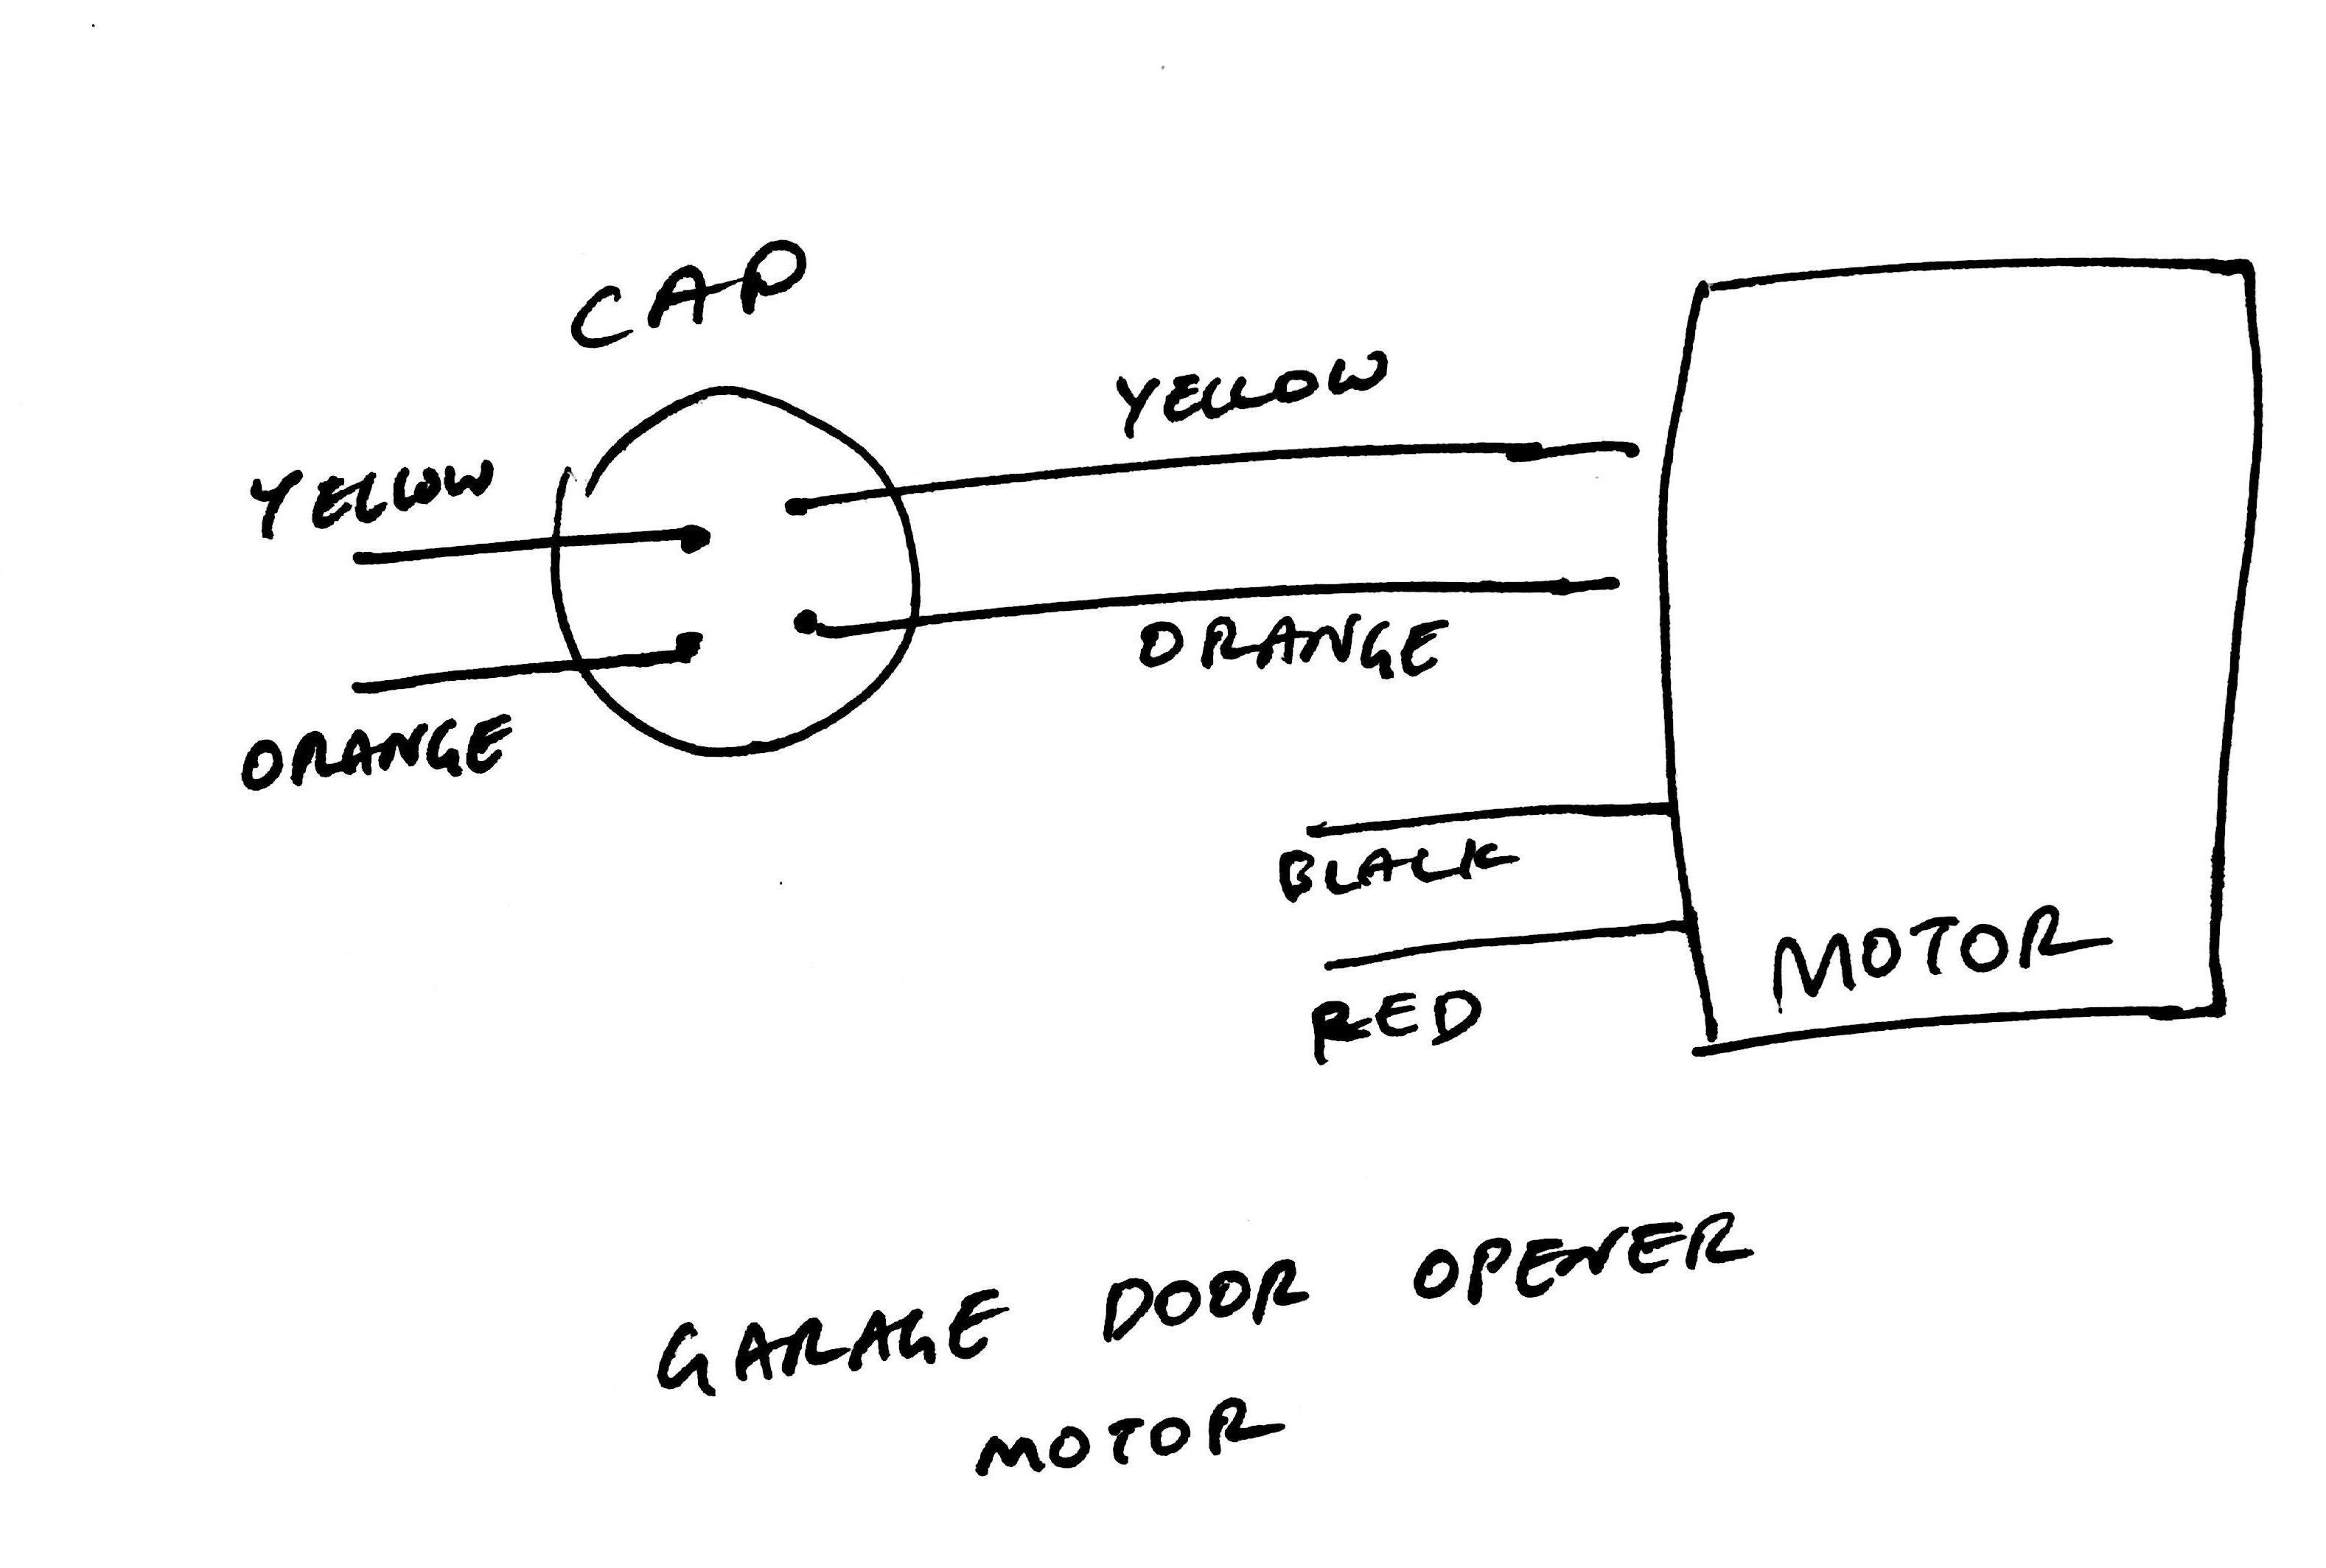 3 Wire Washing Machine Motor Wiring Diagram | Free Wiring Diagram  Wire Electric Motor Wiring Diagram on